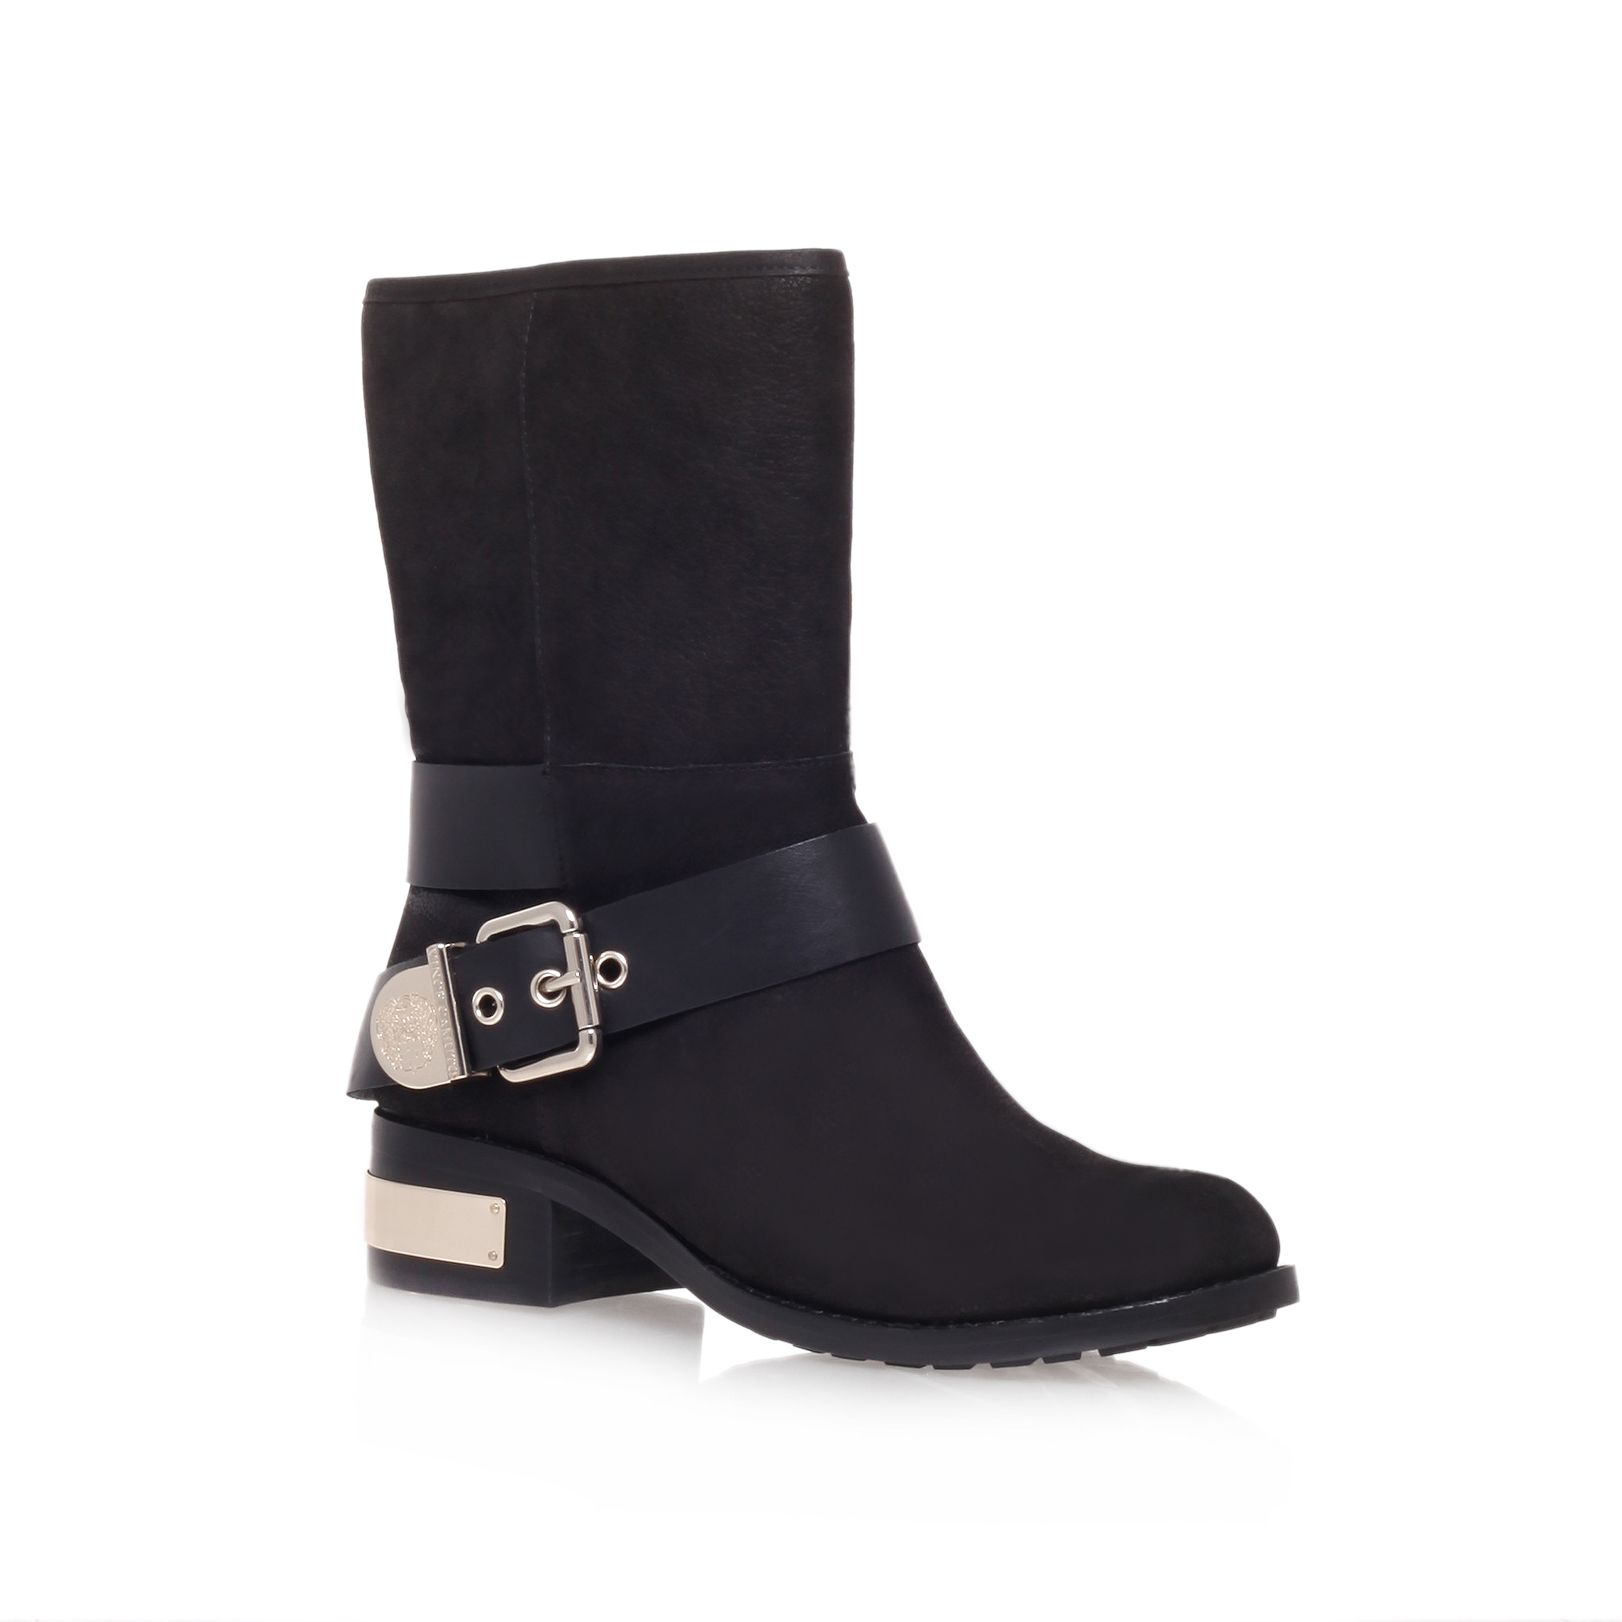 Wellsley low heel biker boots